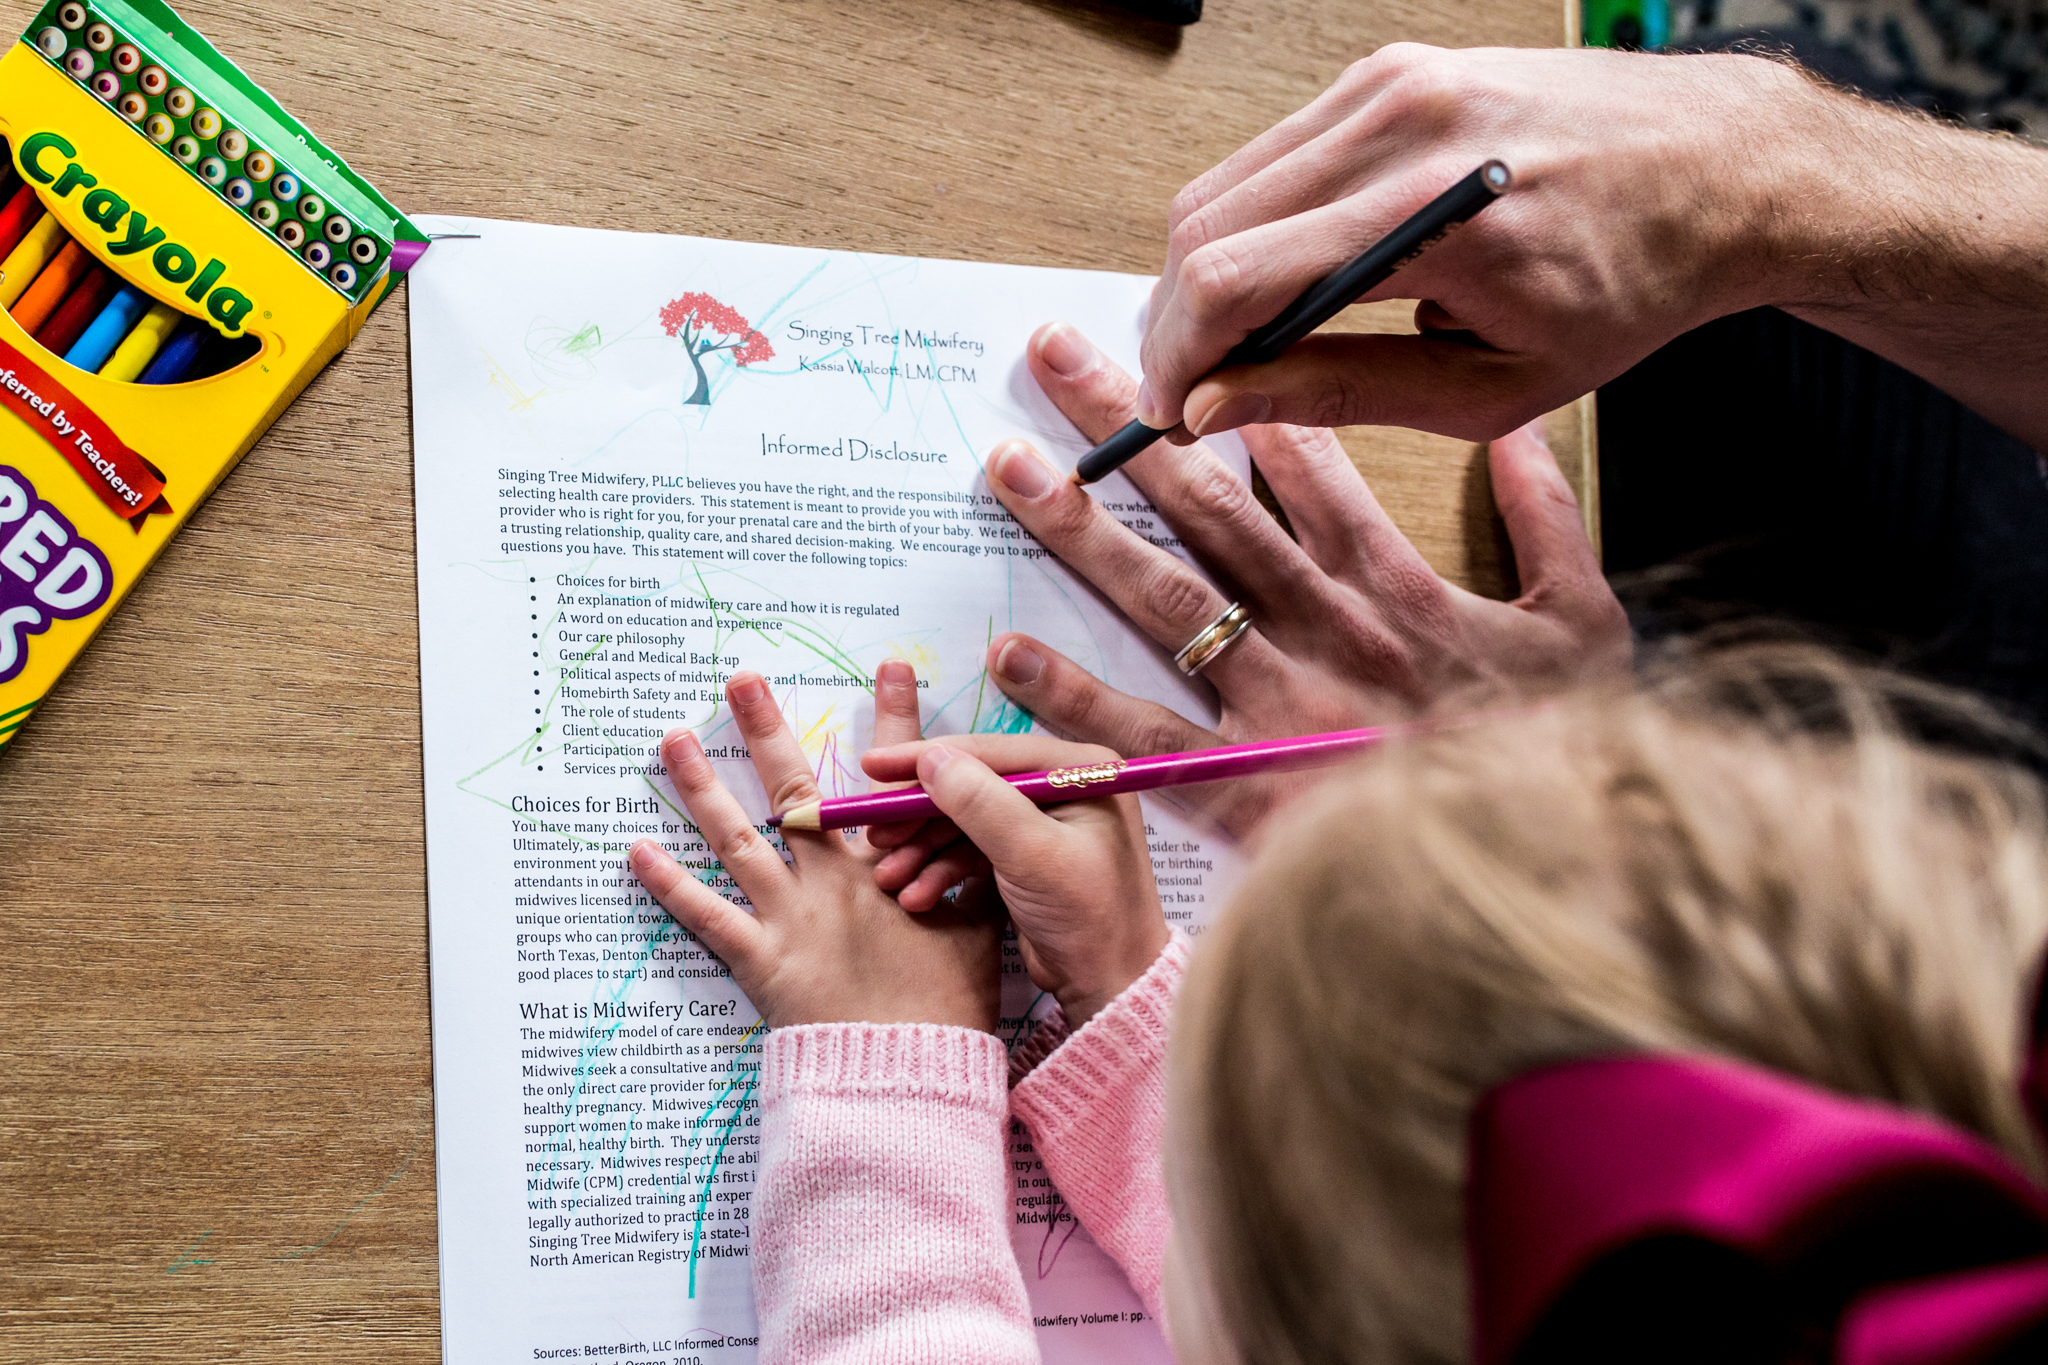 Lawren Rose Photography documents a family as they go to their first midwife appointment and takes a photo of the father coloring with their 2 year old daughter